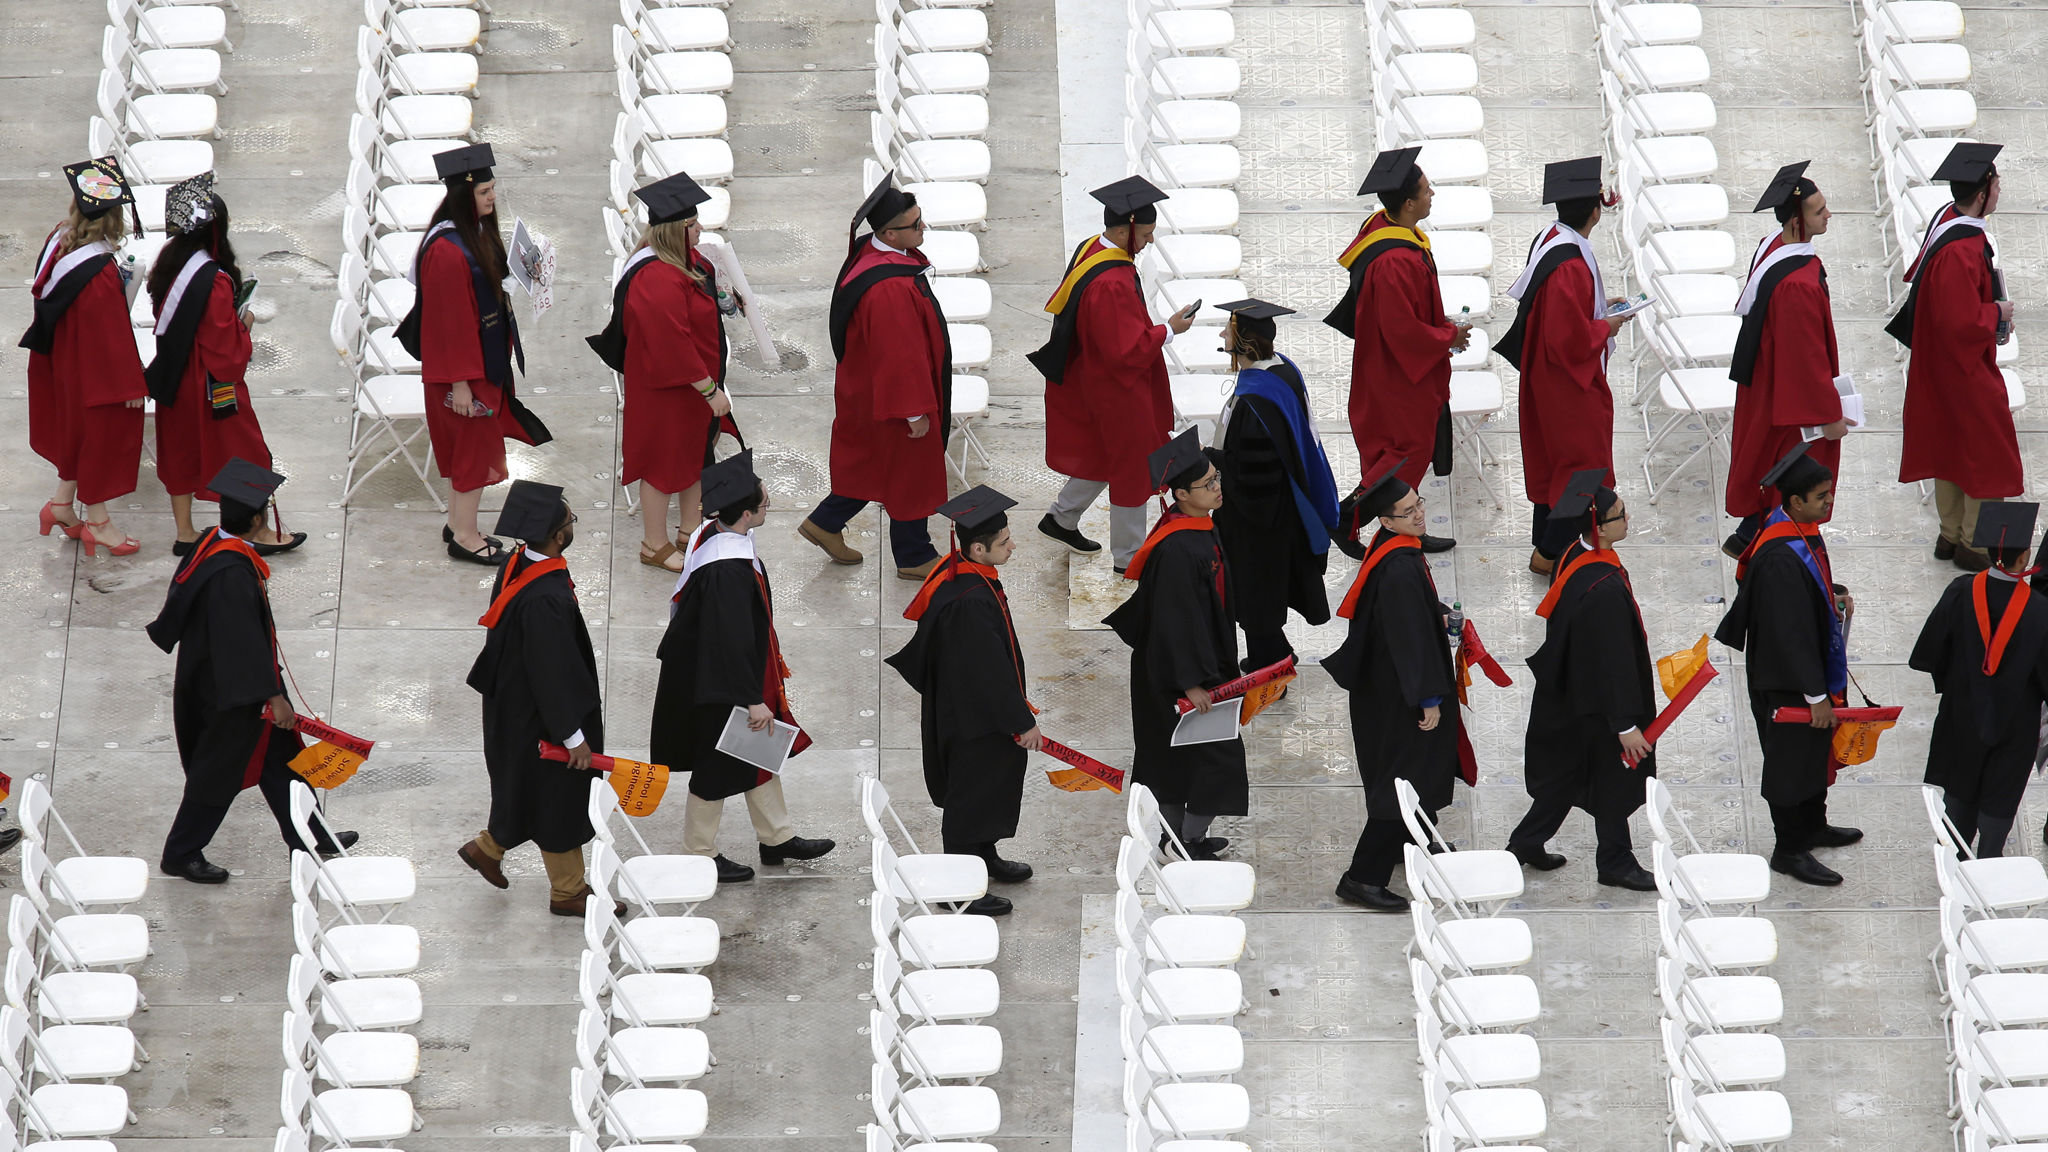 Taking the credit: can universities tackle academic fraud?